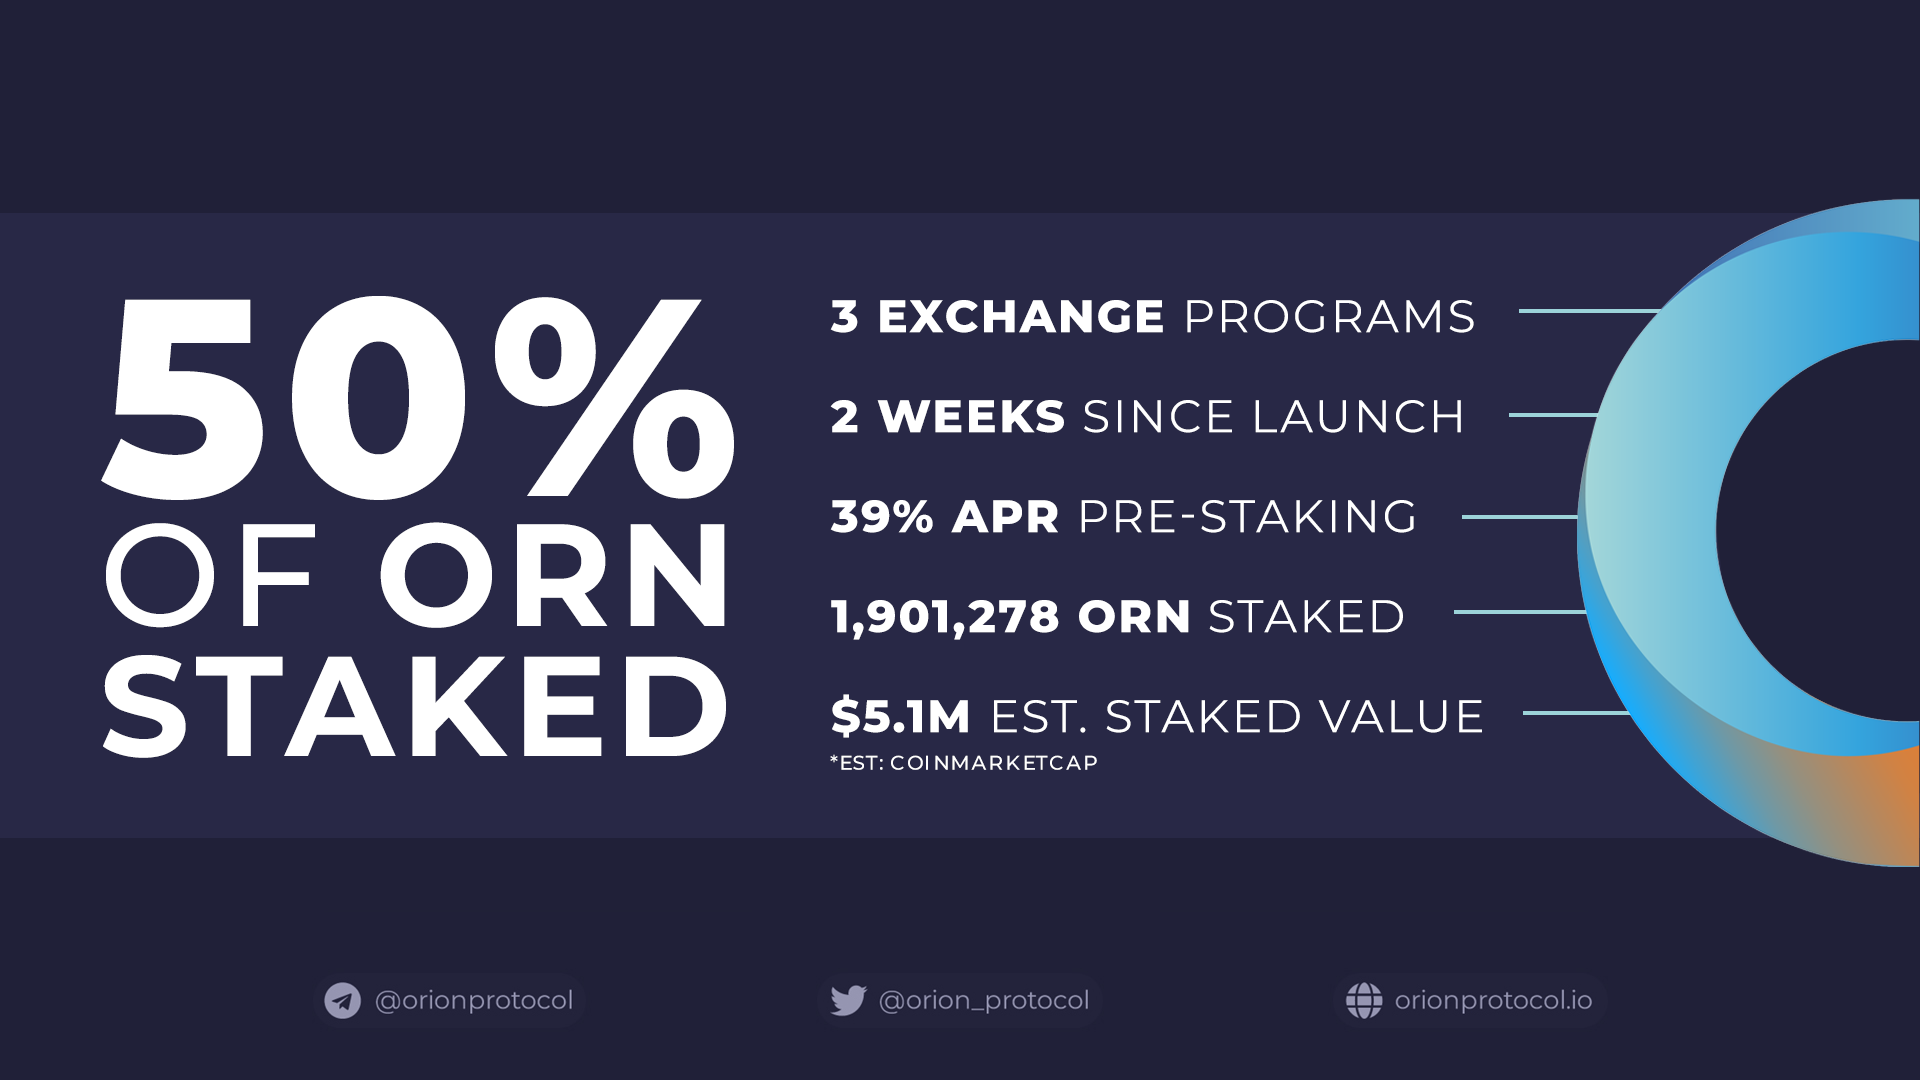 50% of circulating ORN has now been pre-staked.